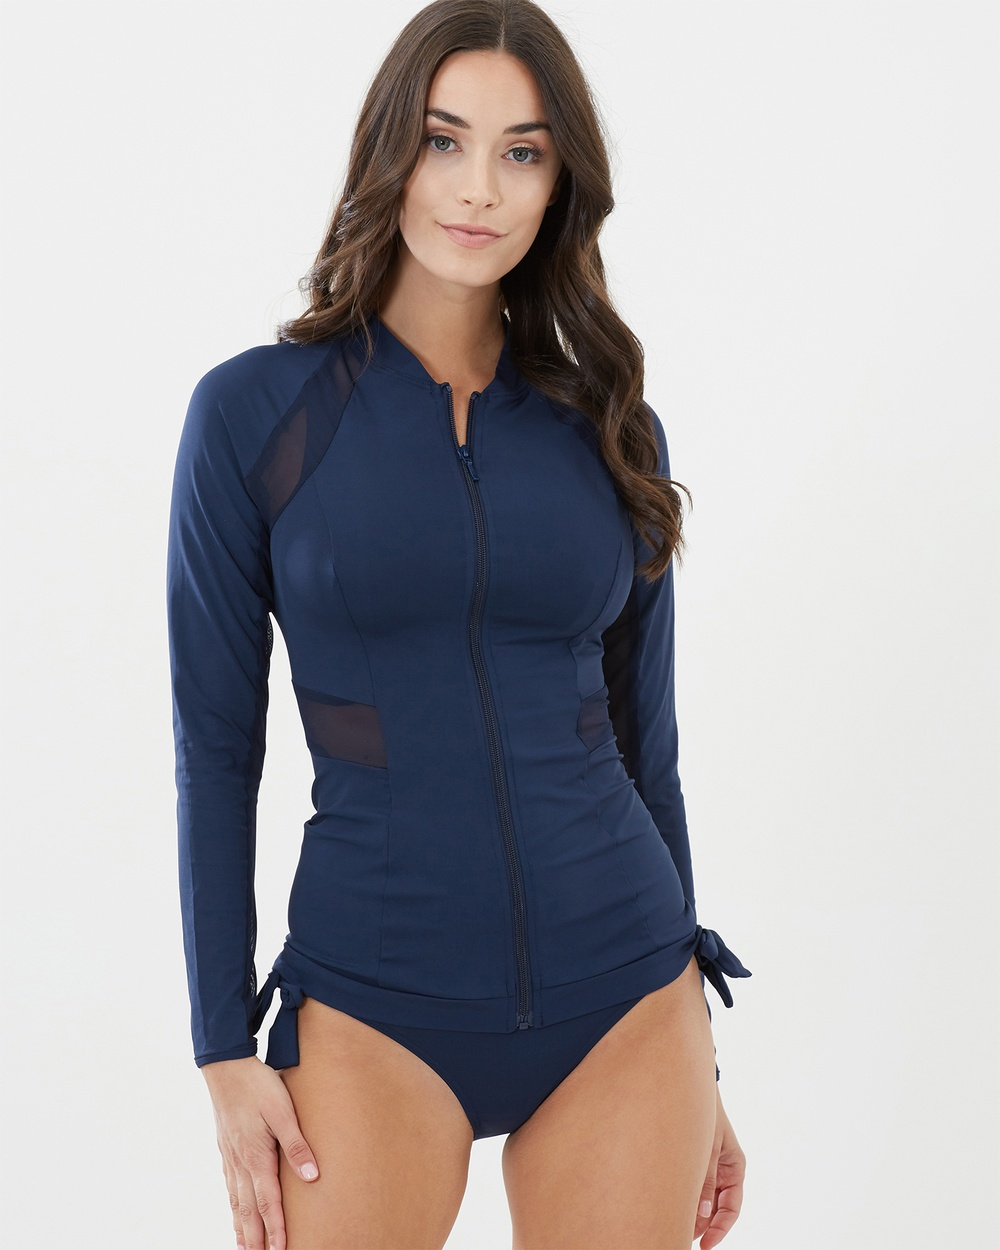 JETS Long Sleeve Rashie Swimwear Navy Long Sleeve Rashie